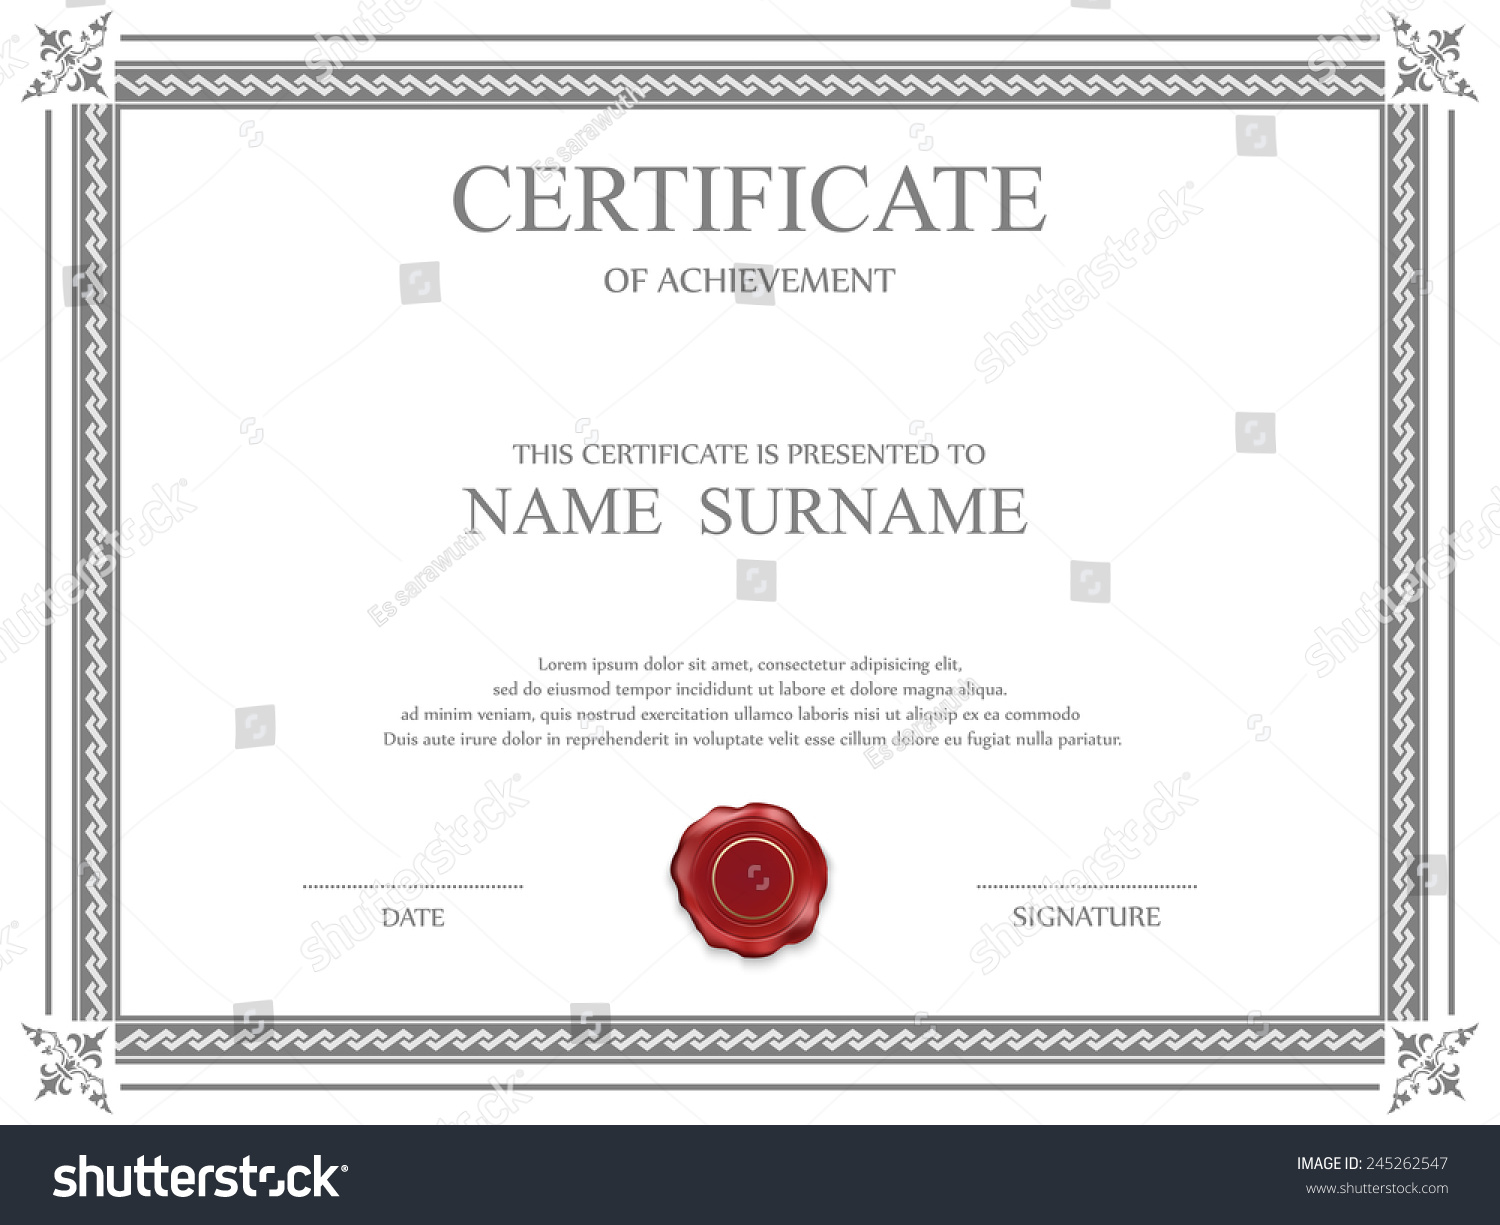 Shareholders Certificate Template Free